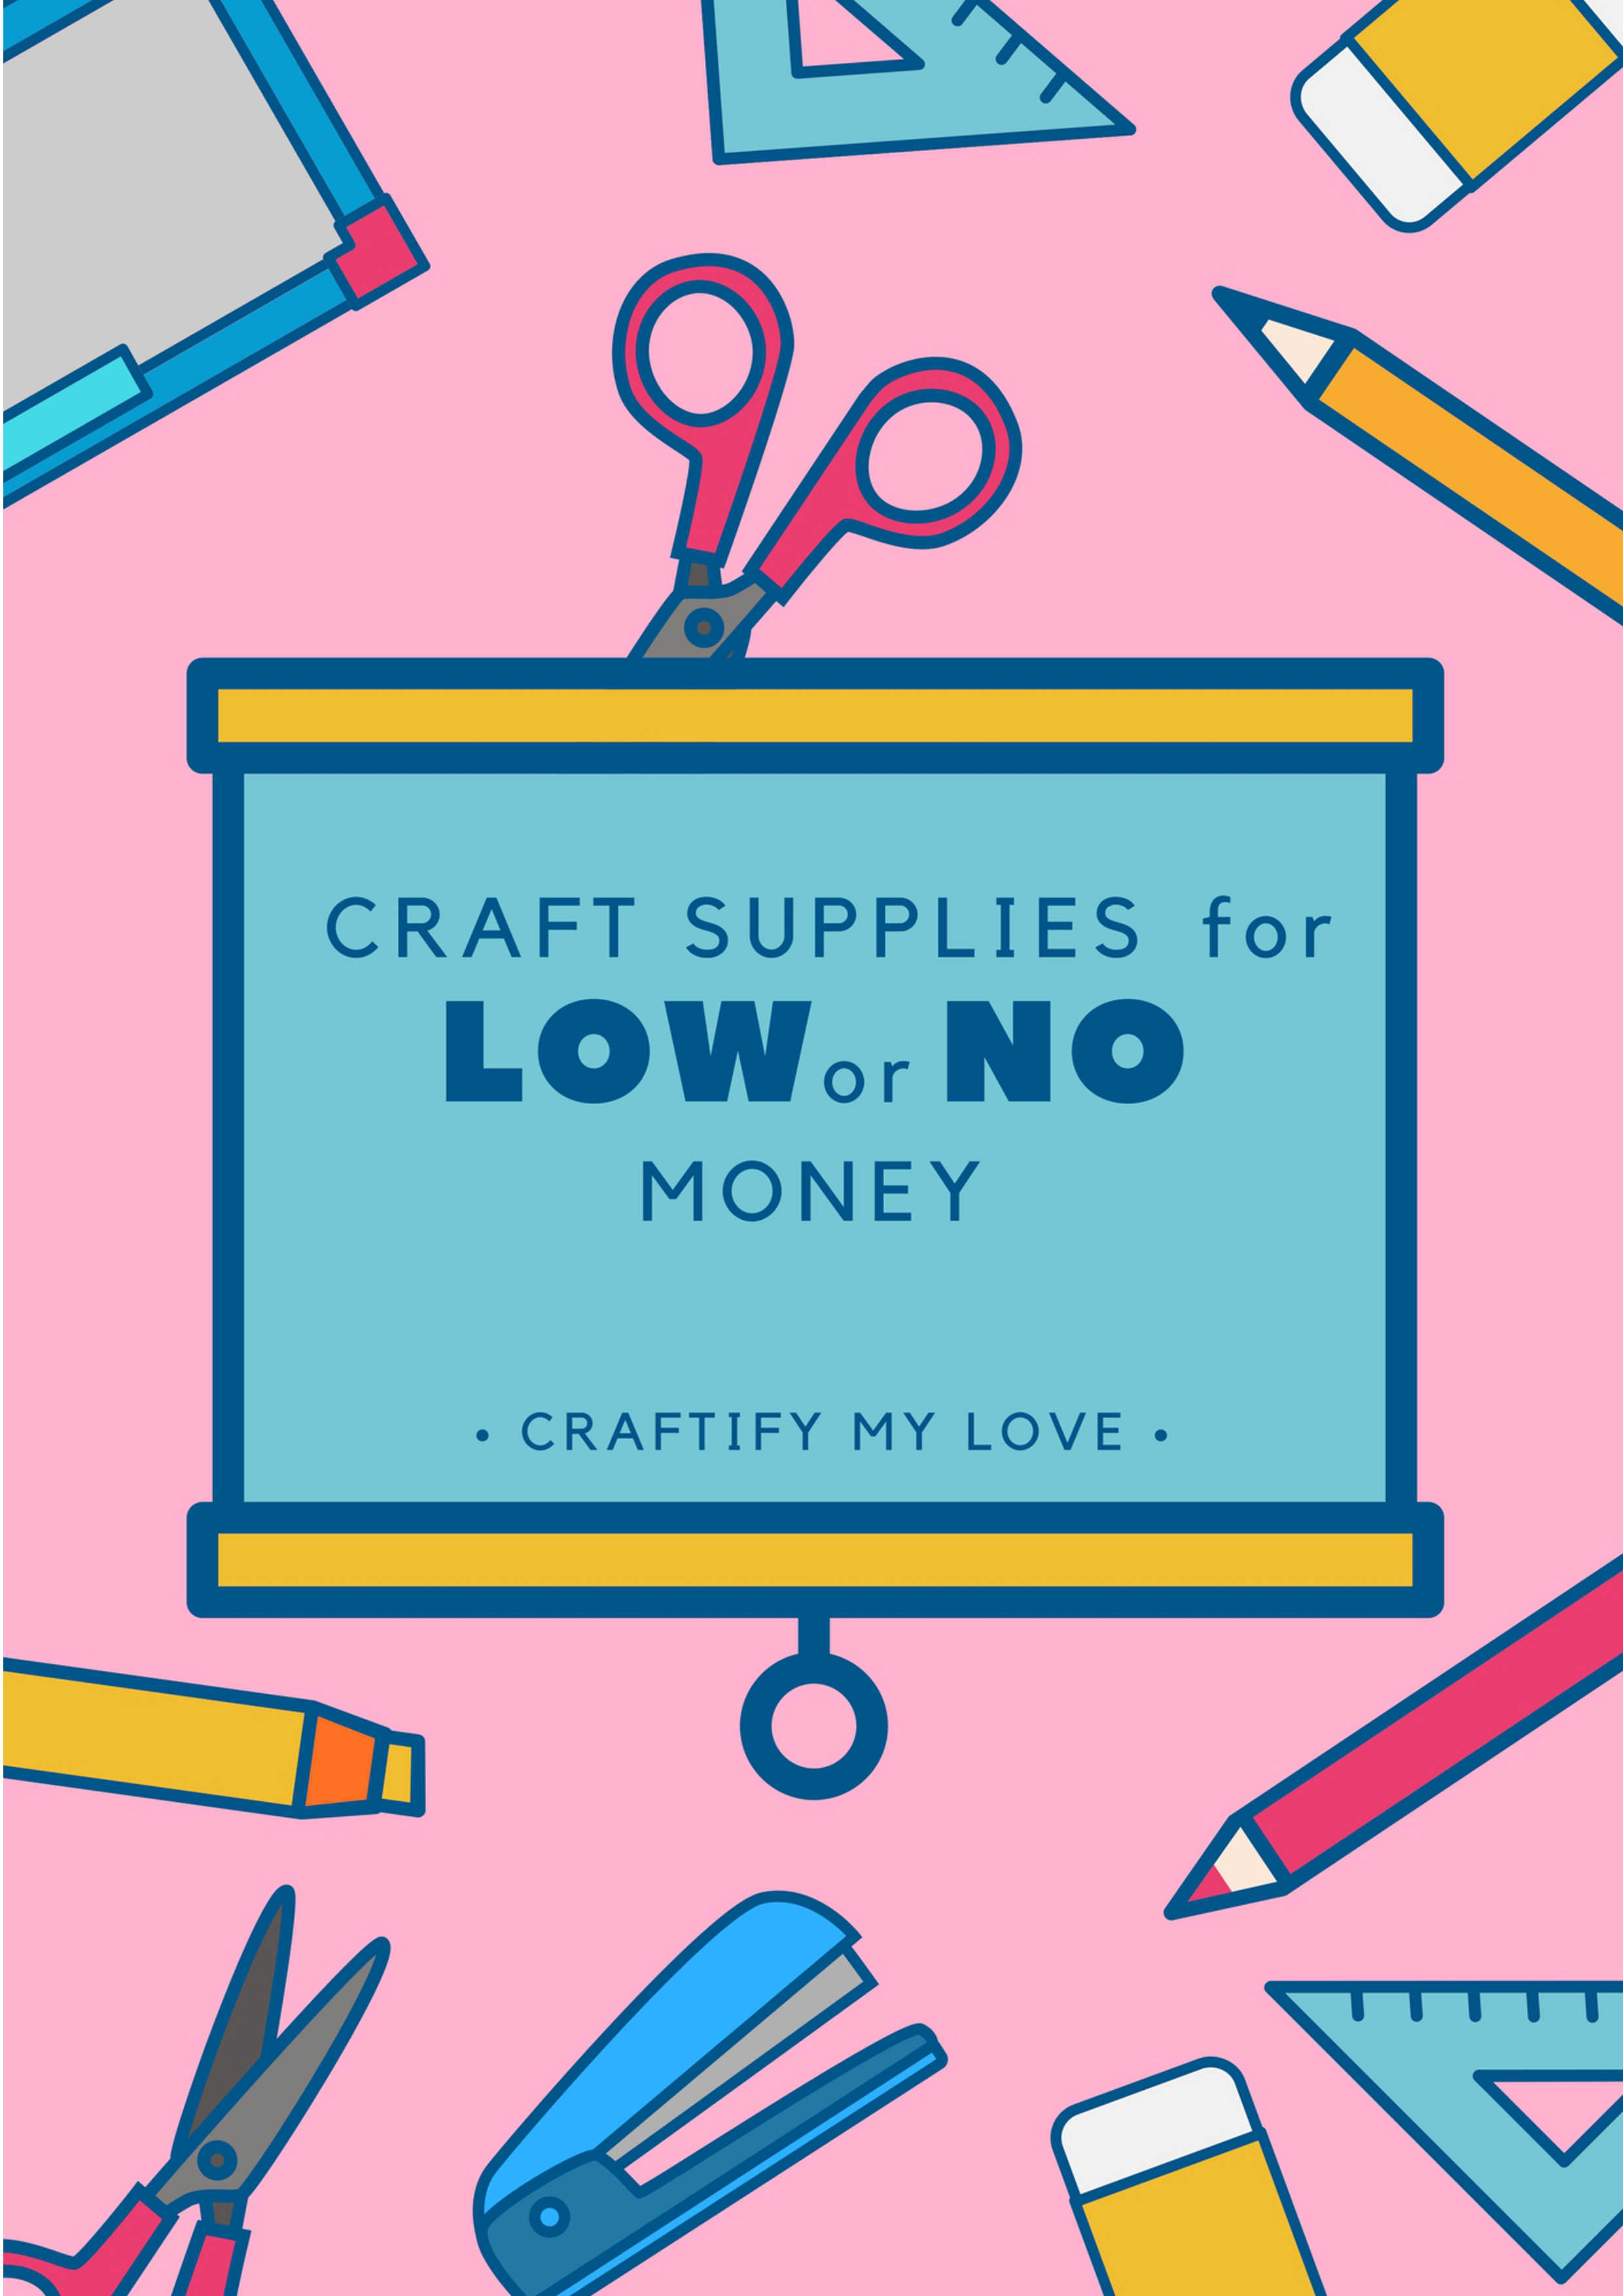 It's super easy to get ahold of craft supplies for just a view dollars or even for free. You only need to know where to look for them! Habiba shares in her free guide exactly that knowledge. Go and download it for free today & start saving money on your creative endeavors. #freecraftsupplies #freeebook #savingmoney #frugalcrafts